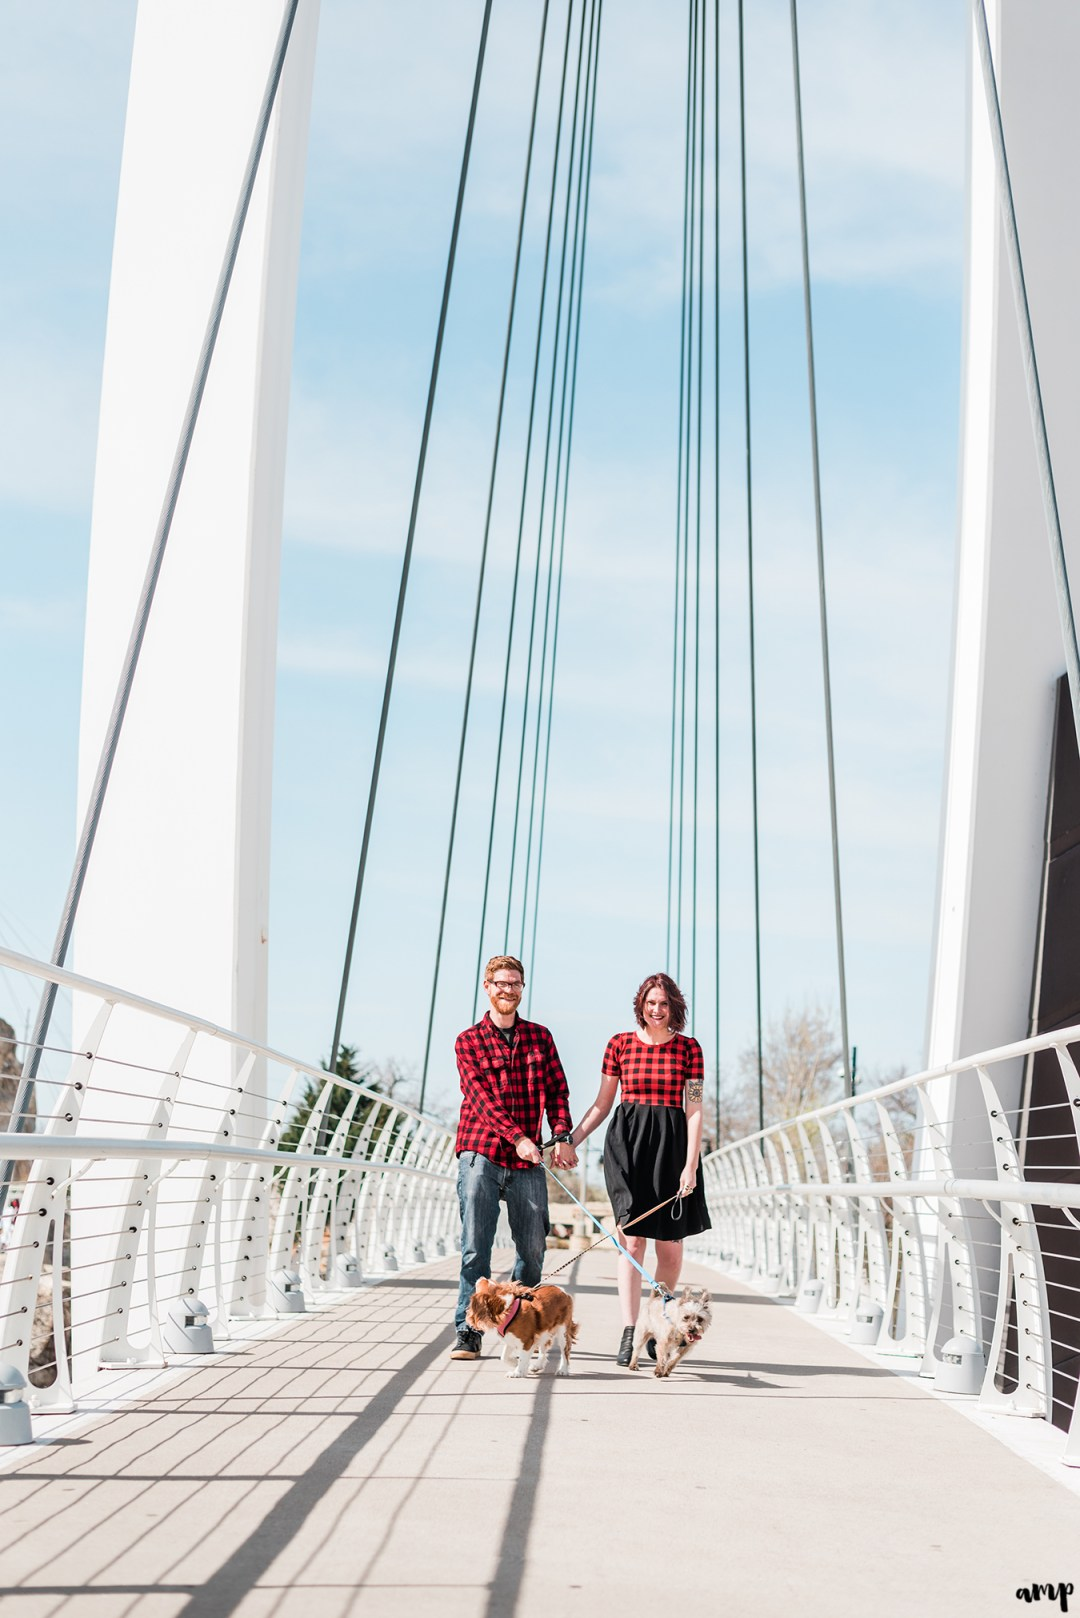 Ben and Courtnee walking their dogs along the Keeper of the Plains bridge